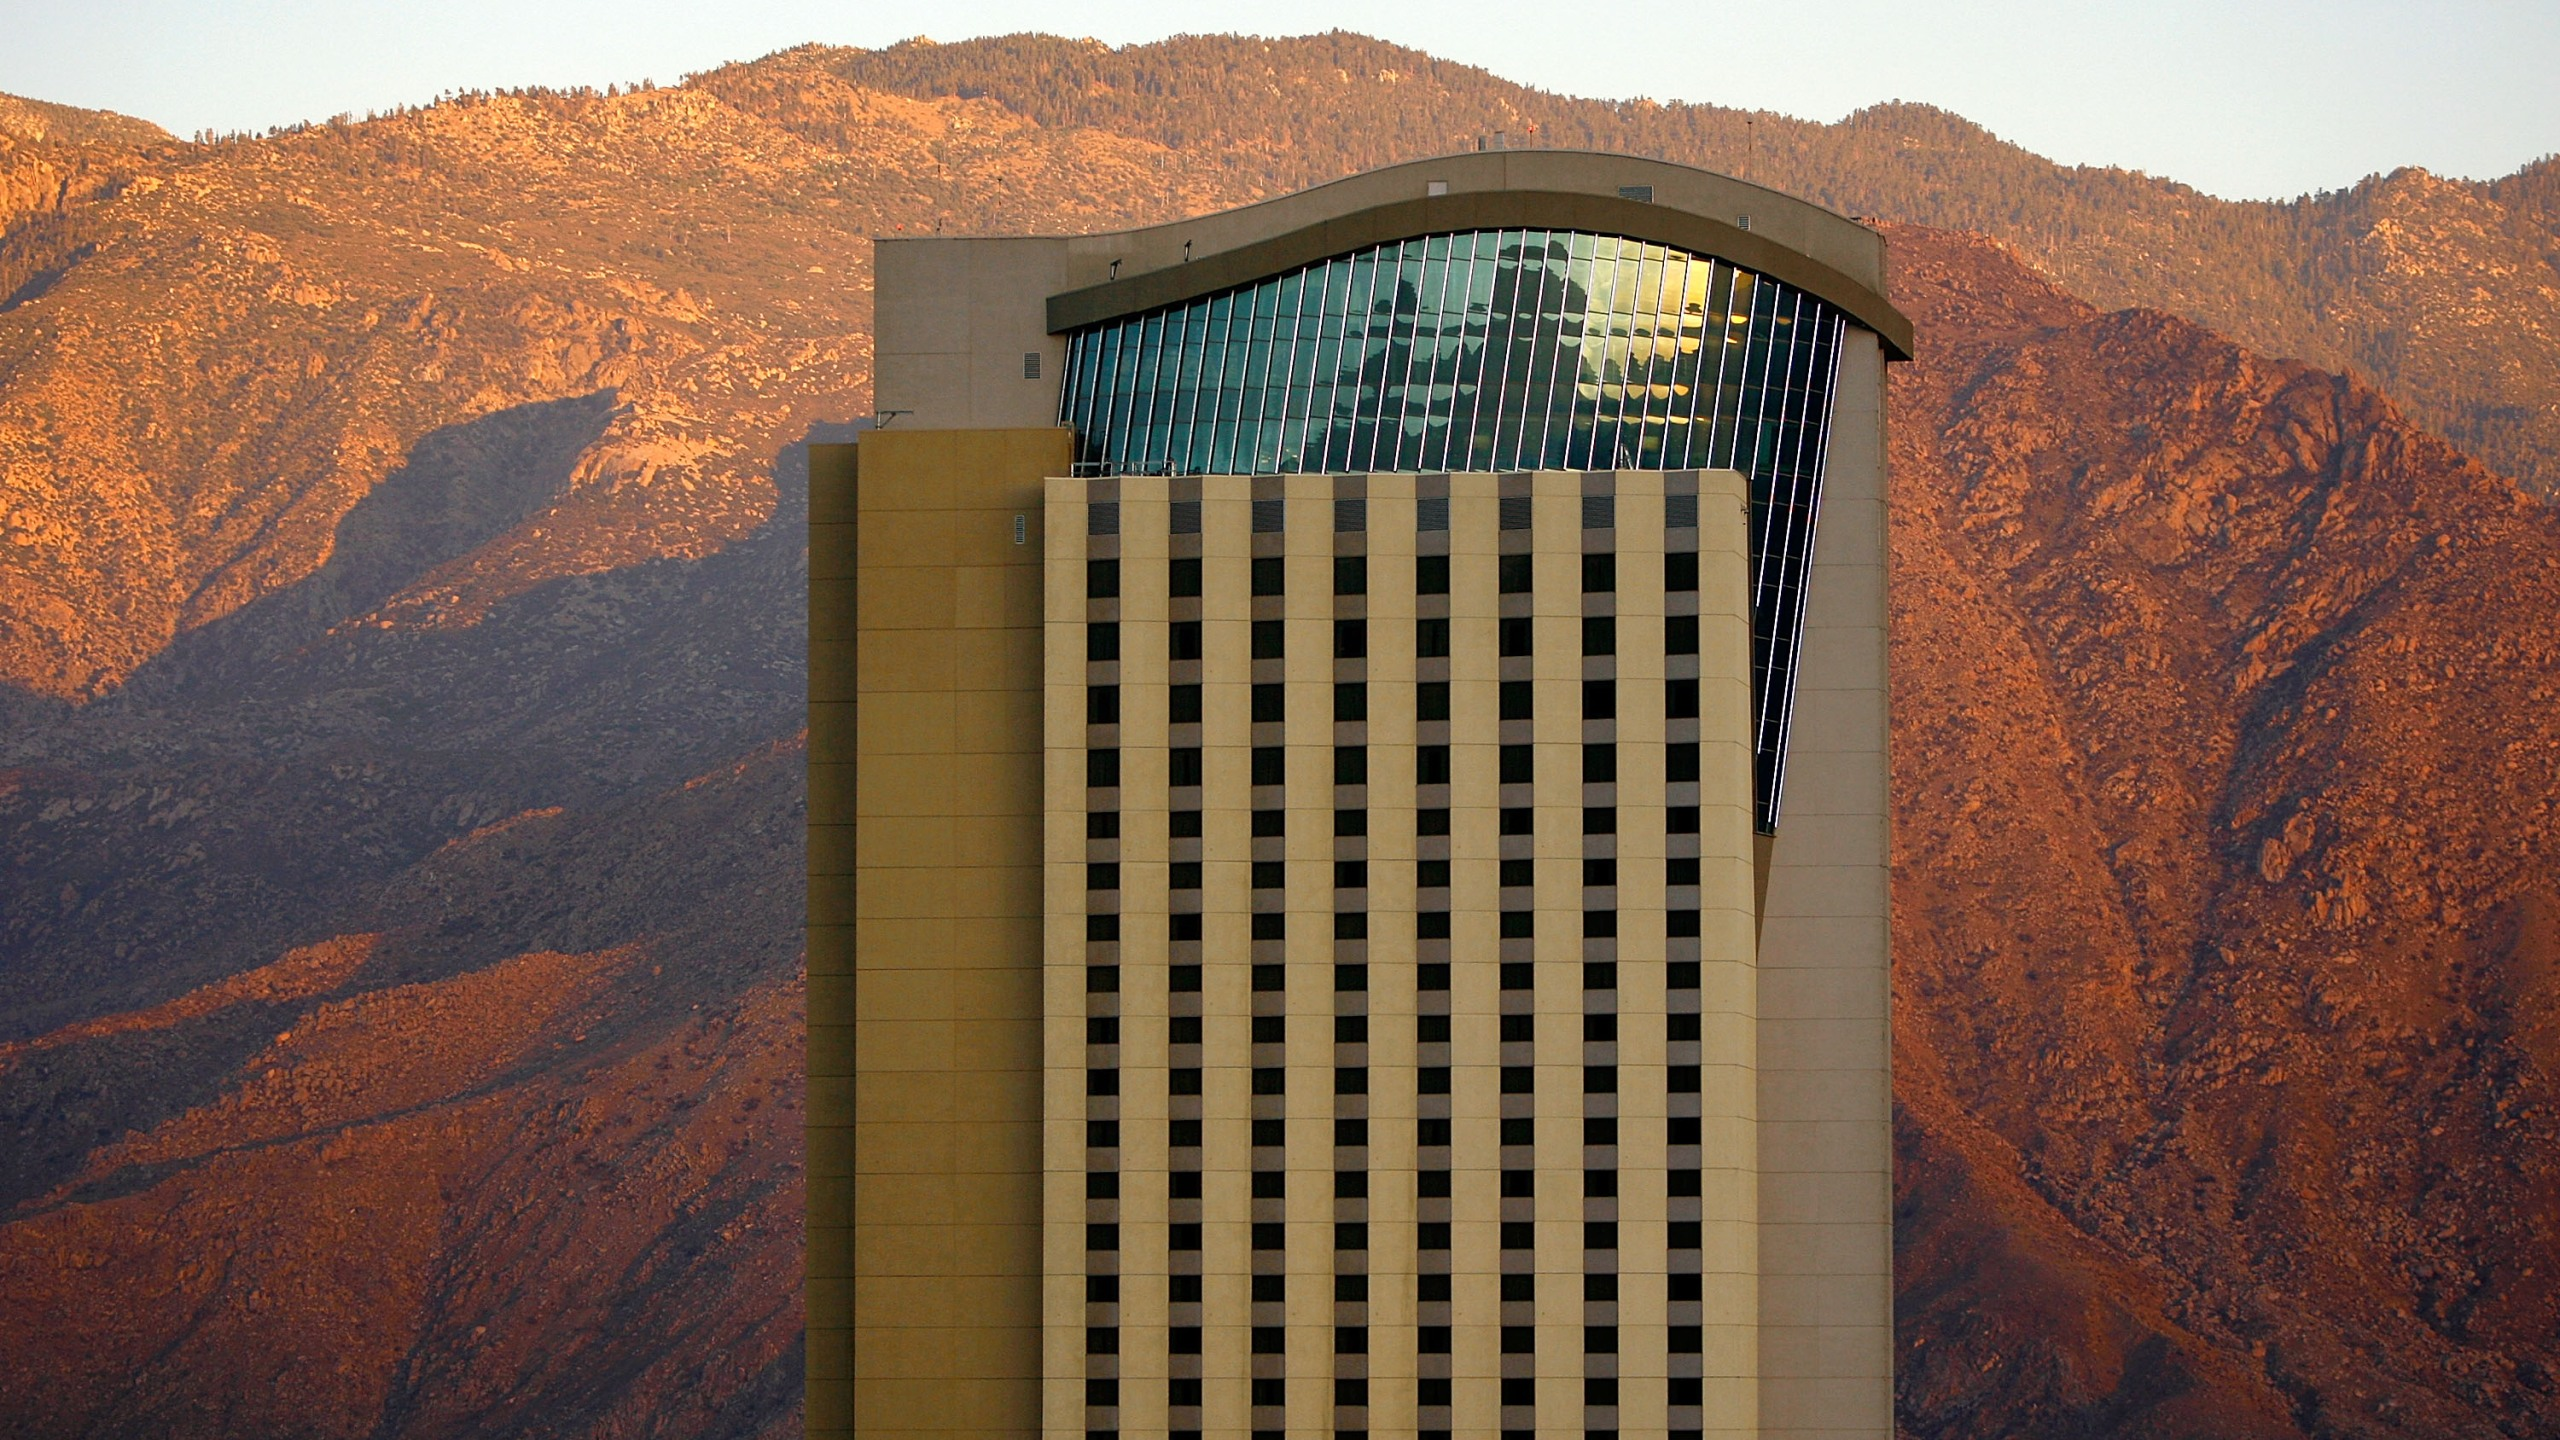 The Morongo Casino Resort and Spa in Cabazon is seen with the San Jacinto Mountains on June 29, 2007. (David McNew / Getty Images)